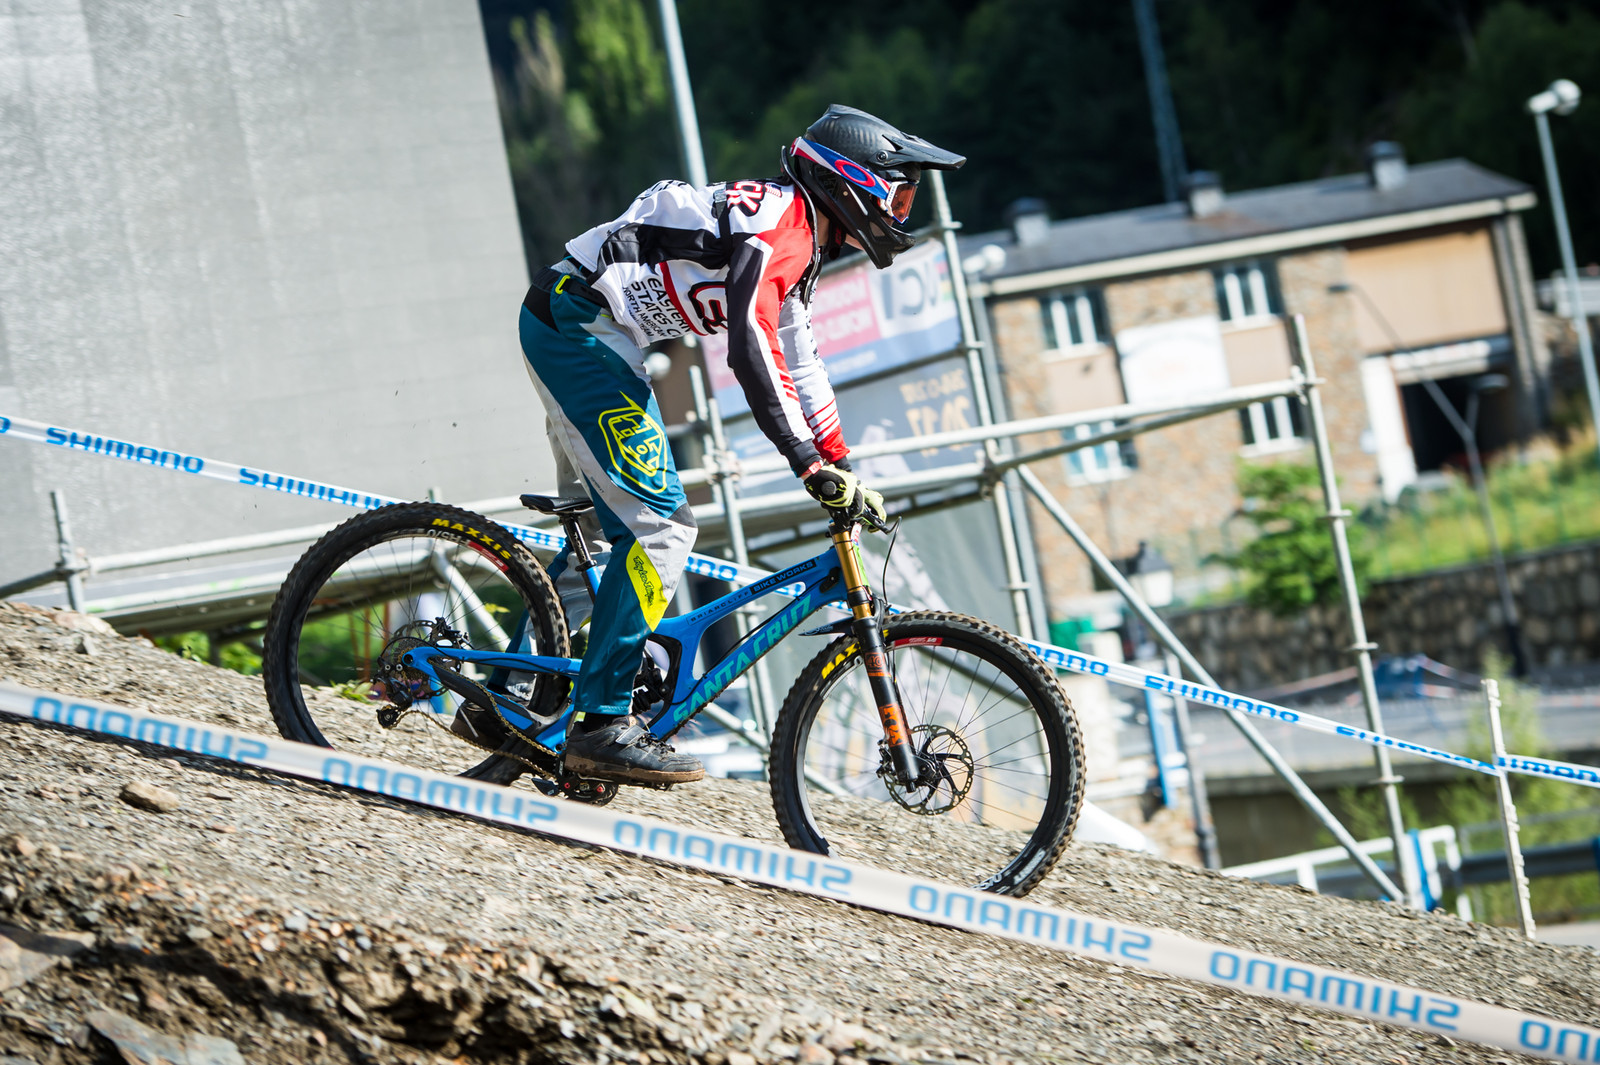 Chain Slap G-Out - G-Out Project: Andorra World Cup 2017 - Mountain Biking Pictures - Vital MTB